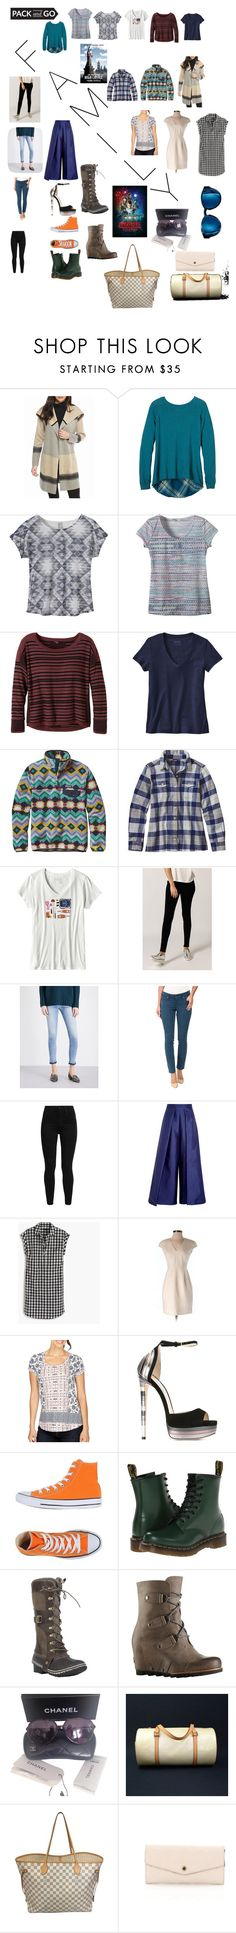 """Visiting famil you have to put on your best face and pretend the world is ok"" by adam123-1 ❤ liked on Polyvore featuring Calvin Klein, prAna, Patagonia, Hudson Jeans, Lucky Brand, Levi's, Solace, J.Crew, Jimmy Choo and Converse"